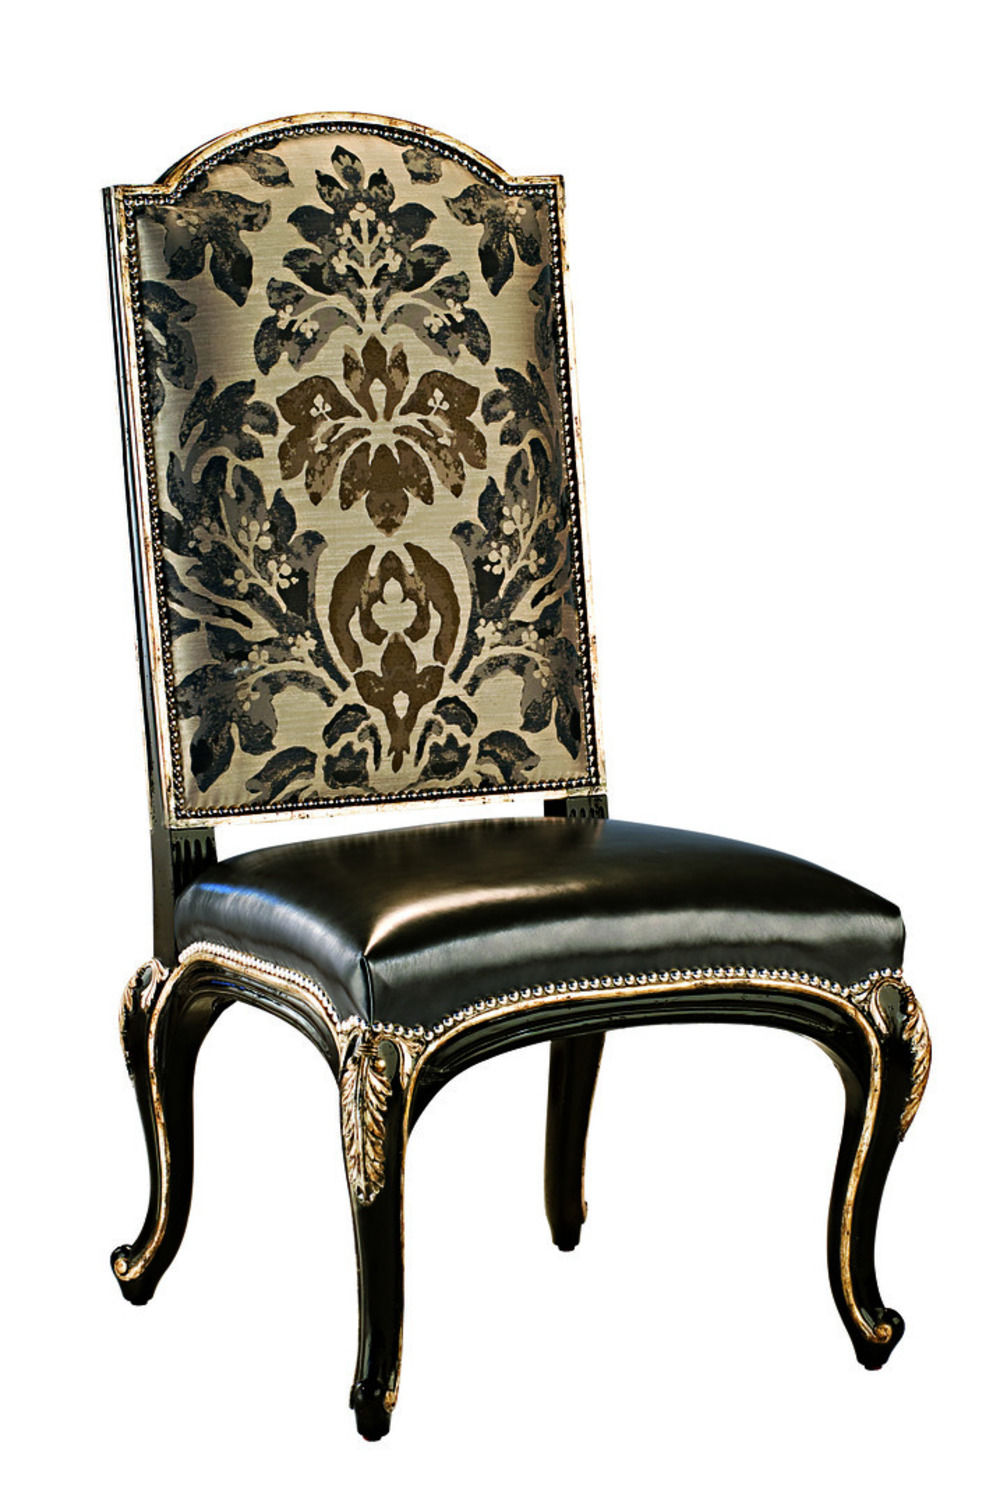 MARGE CARSON, INC. - Piazza San Marco Side Chair